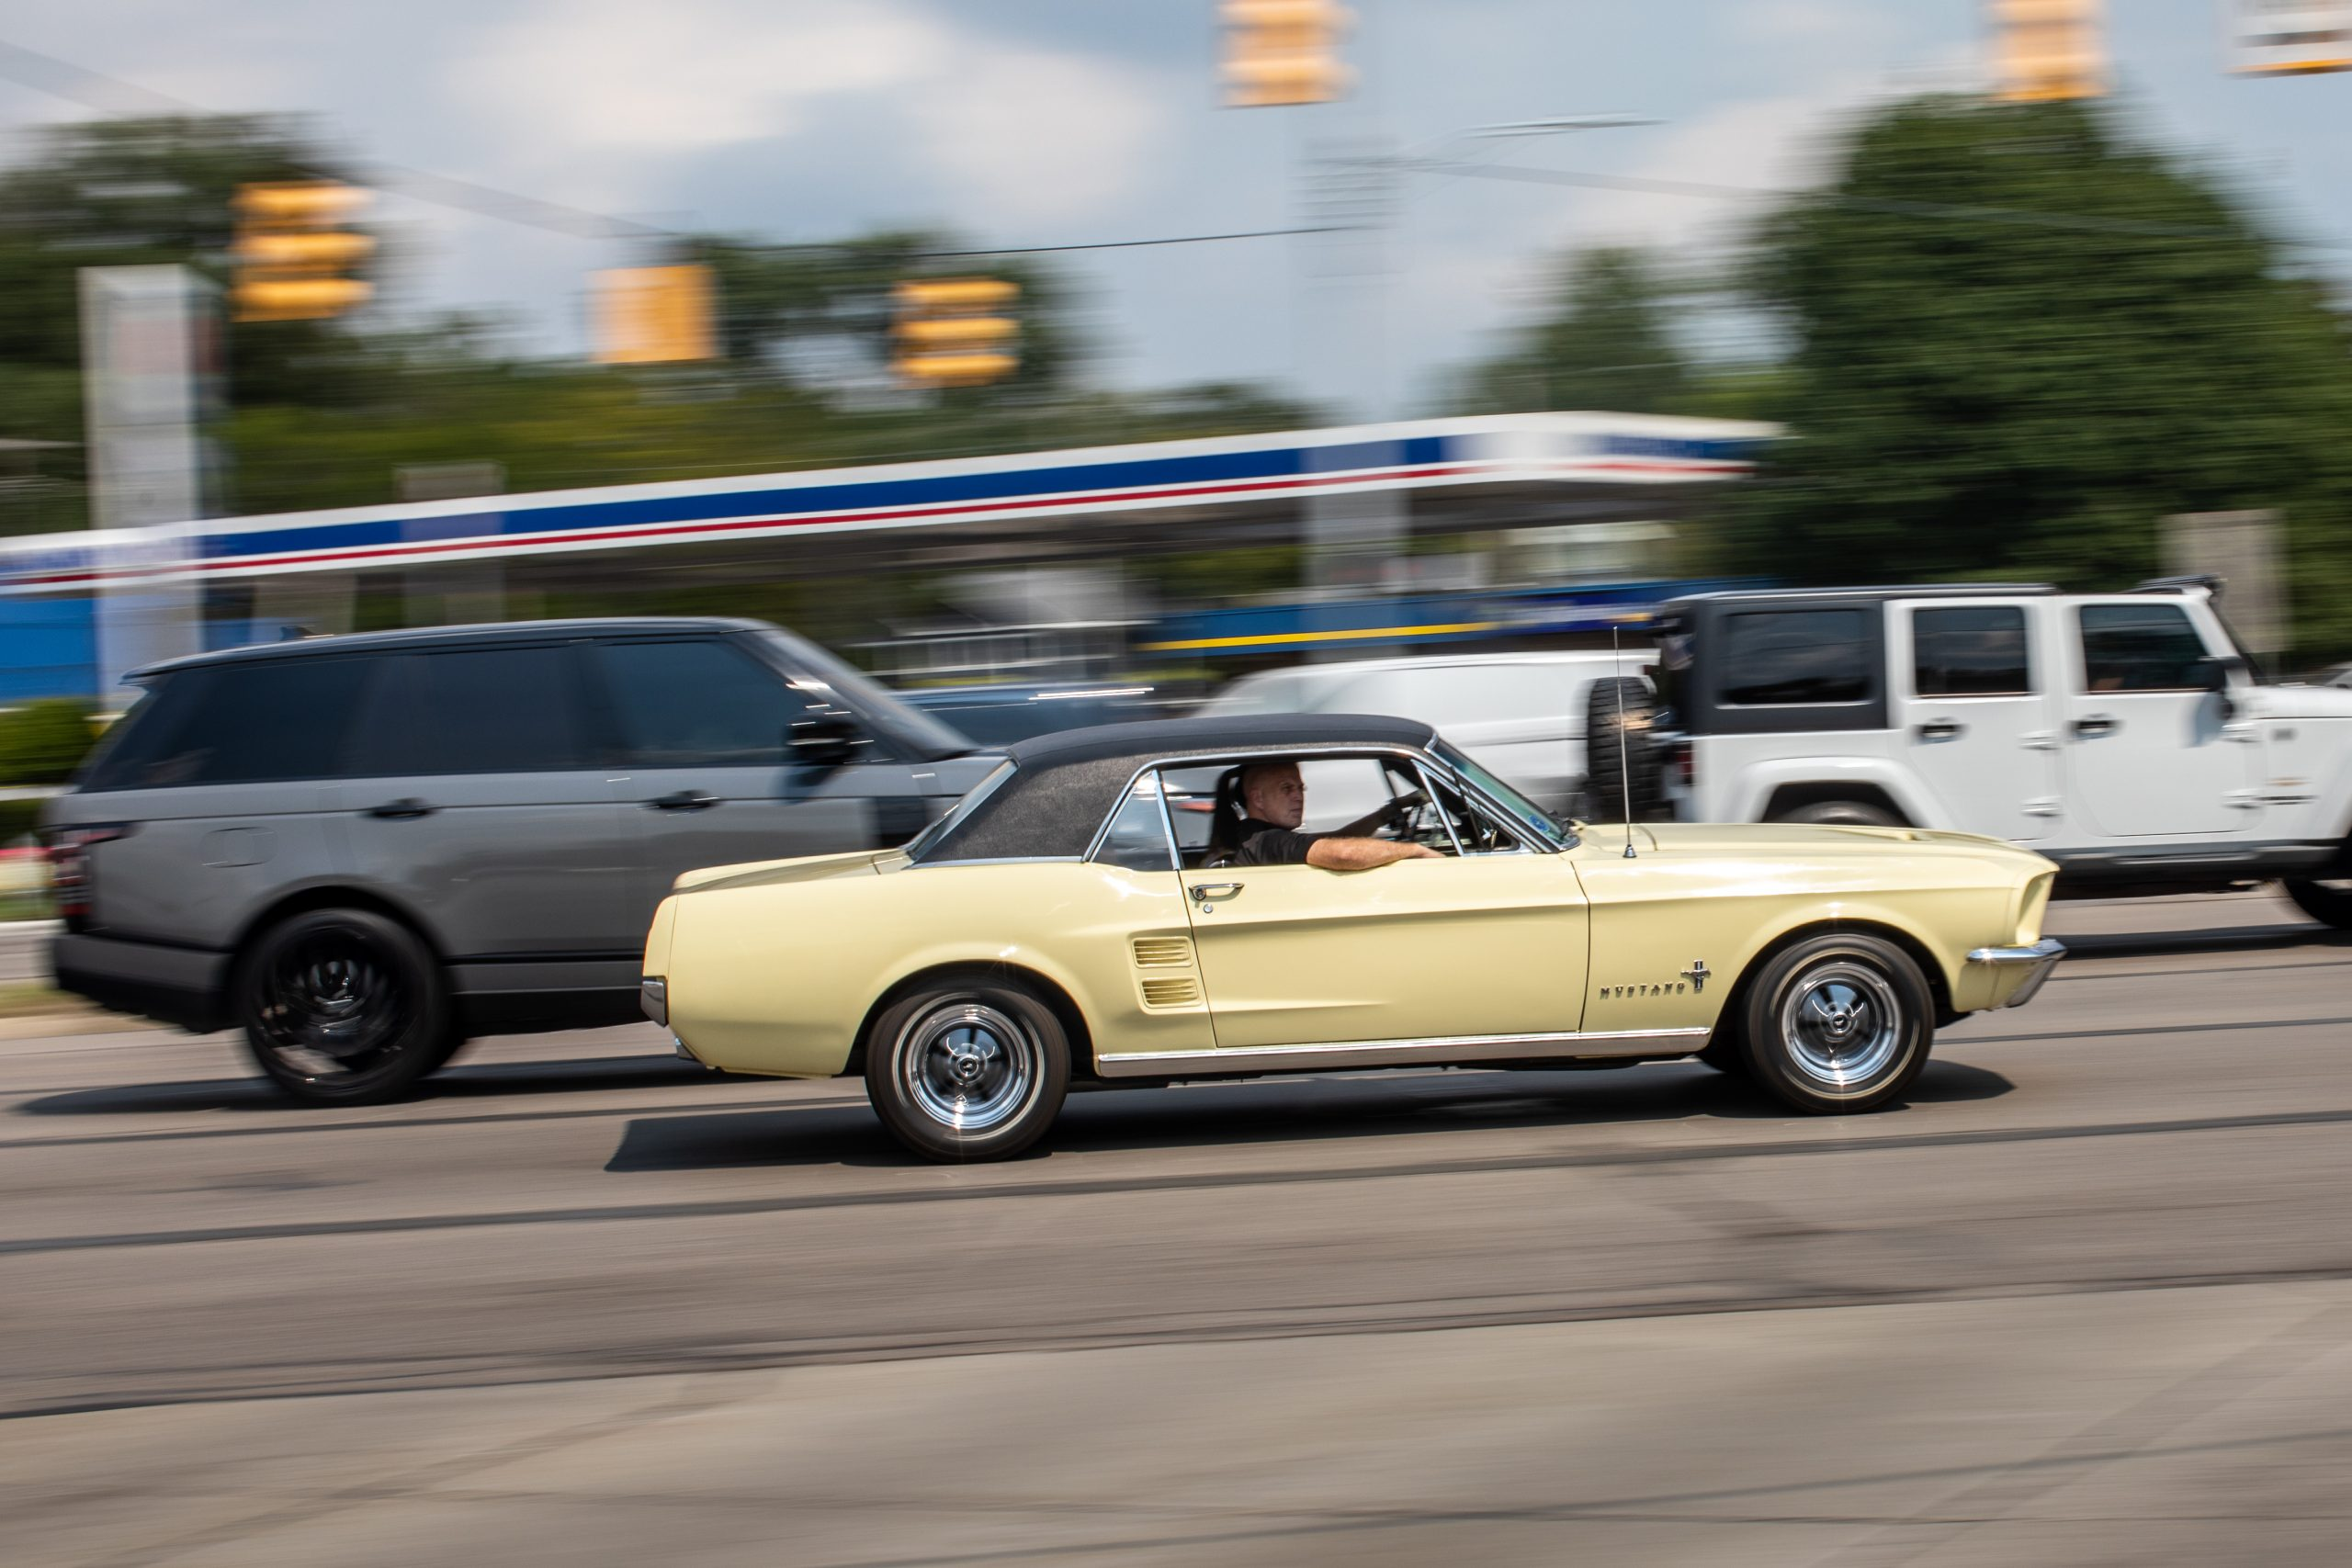 2021 Dream Cruise woodward ave classic mustang